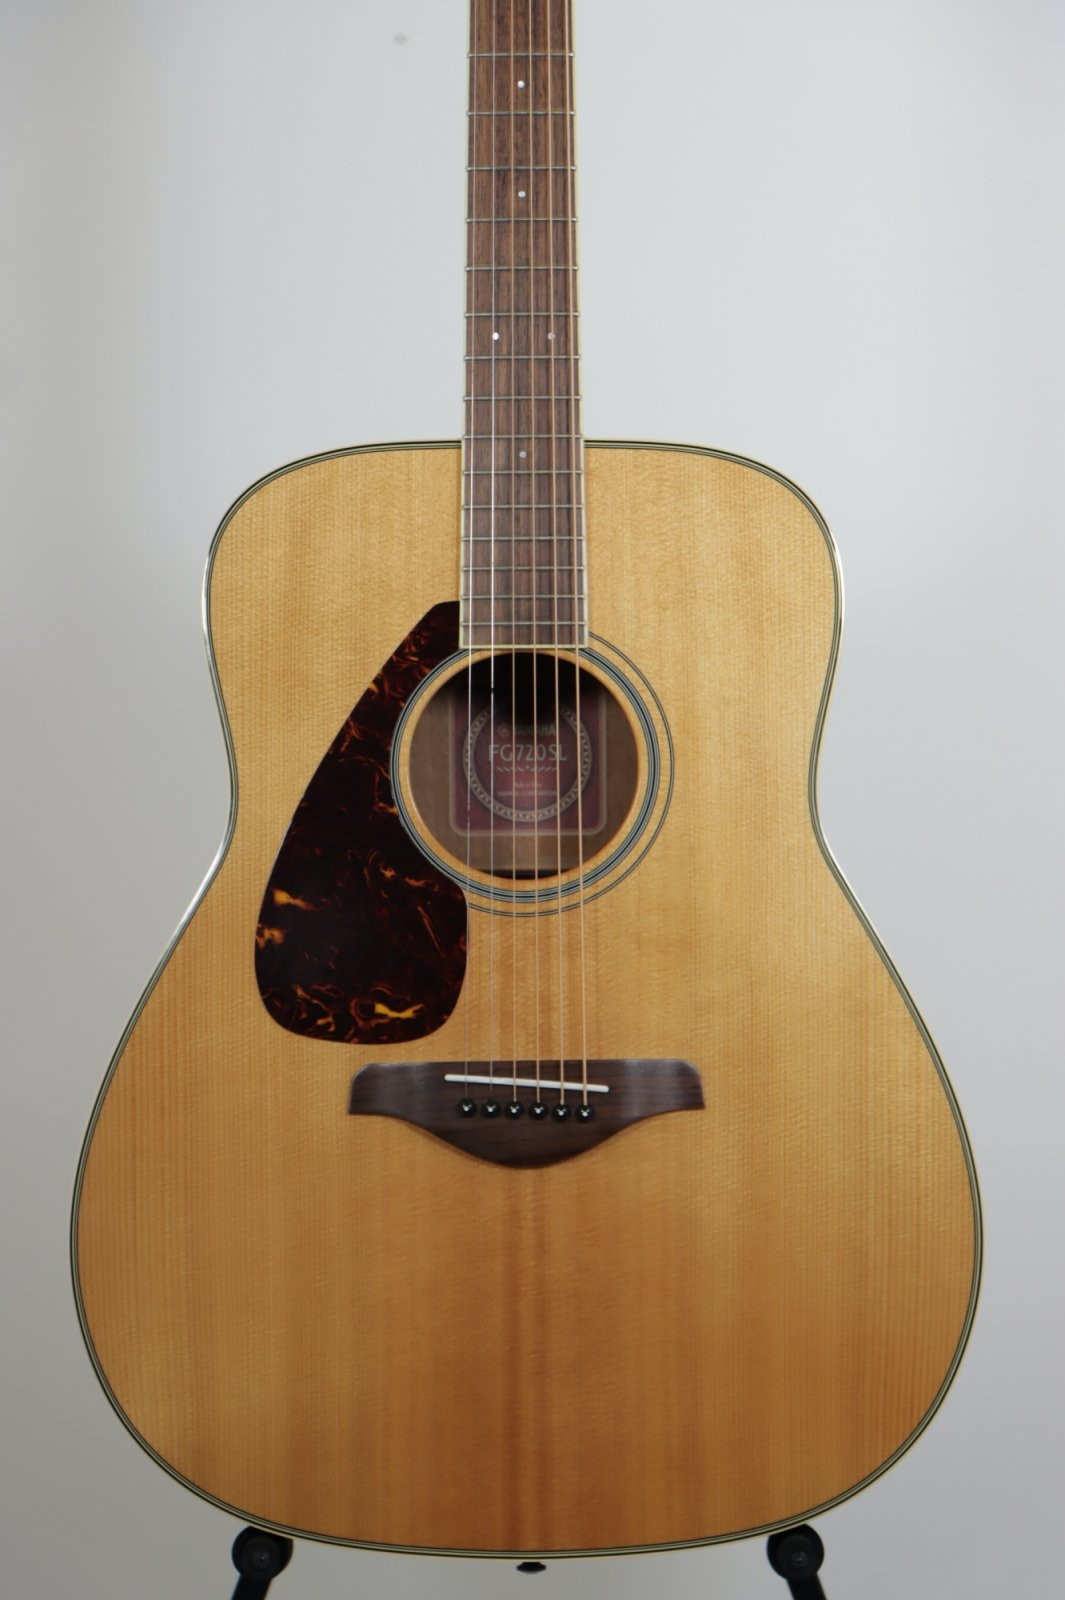 USED Yamaha FG720SL LEFT-HANDED Dreadnaught Acoustic Guitar / Solid Spruce Top!  Sounds HUGE